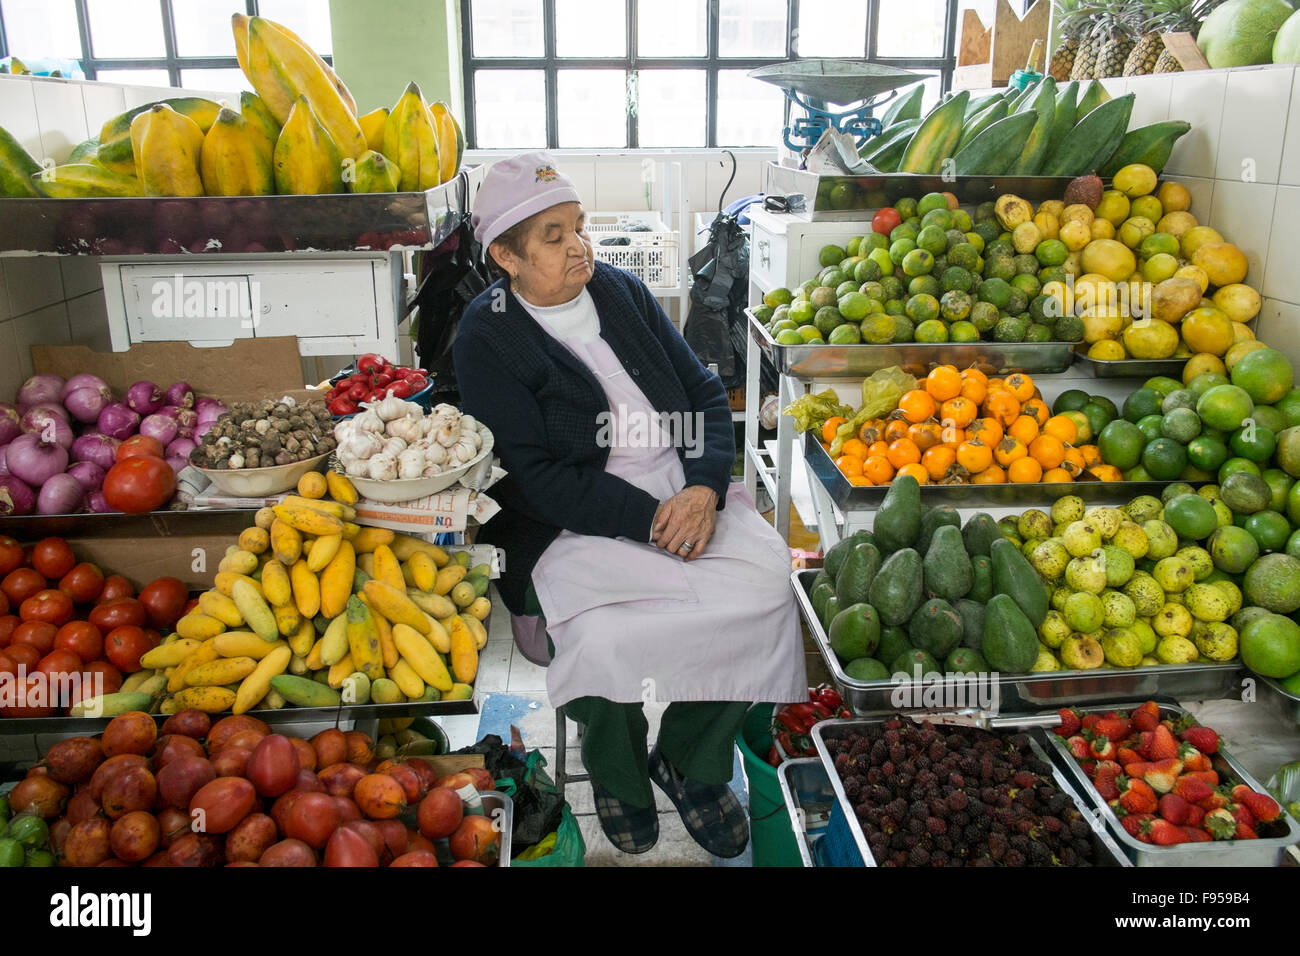 Quito , Ecuador. The Mercado Central de Quito. A woman sleeps on her fruit stall. - Stock Image